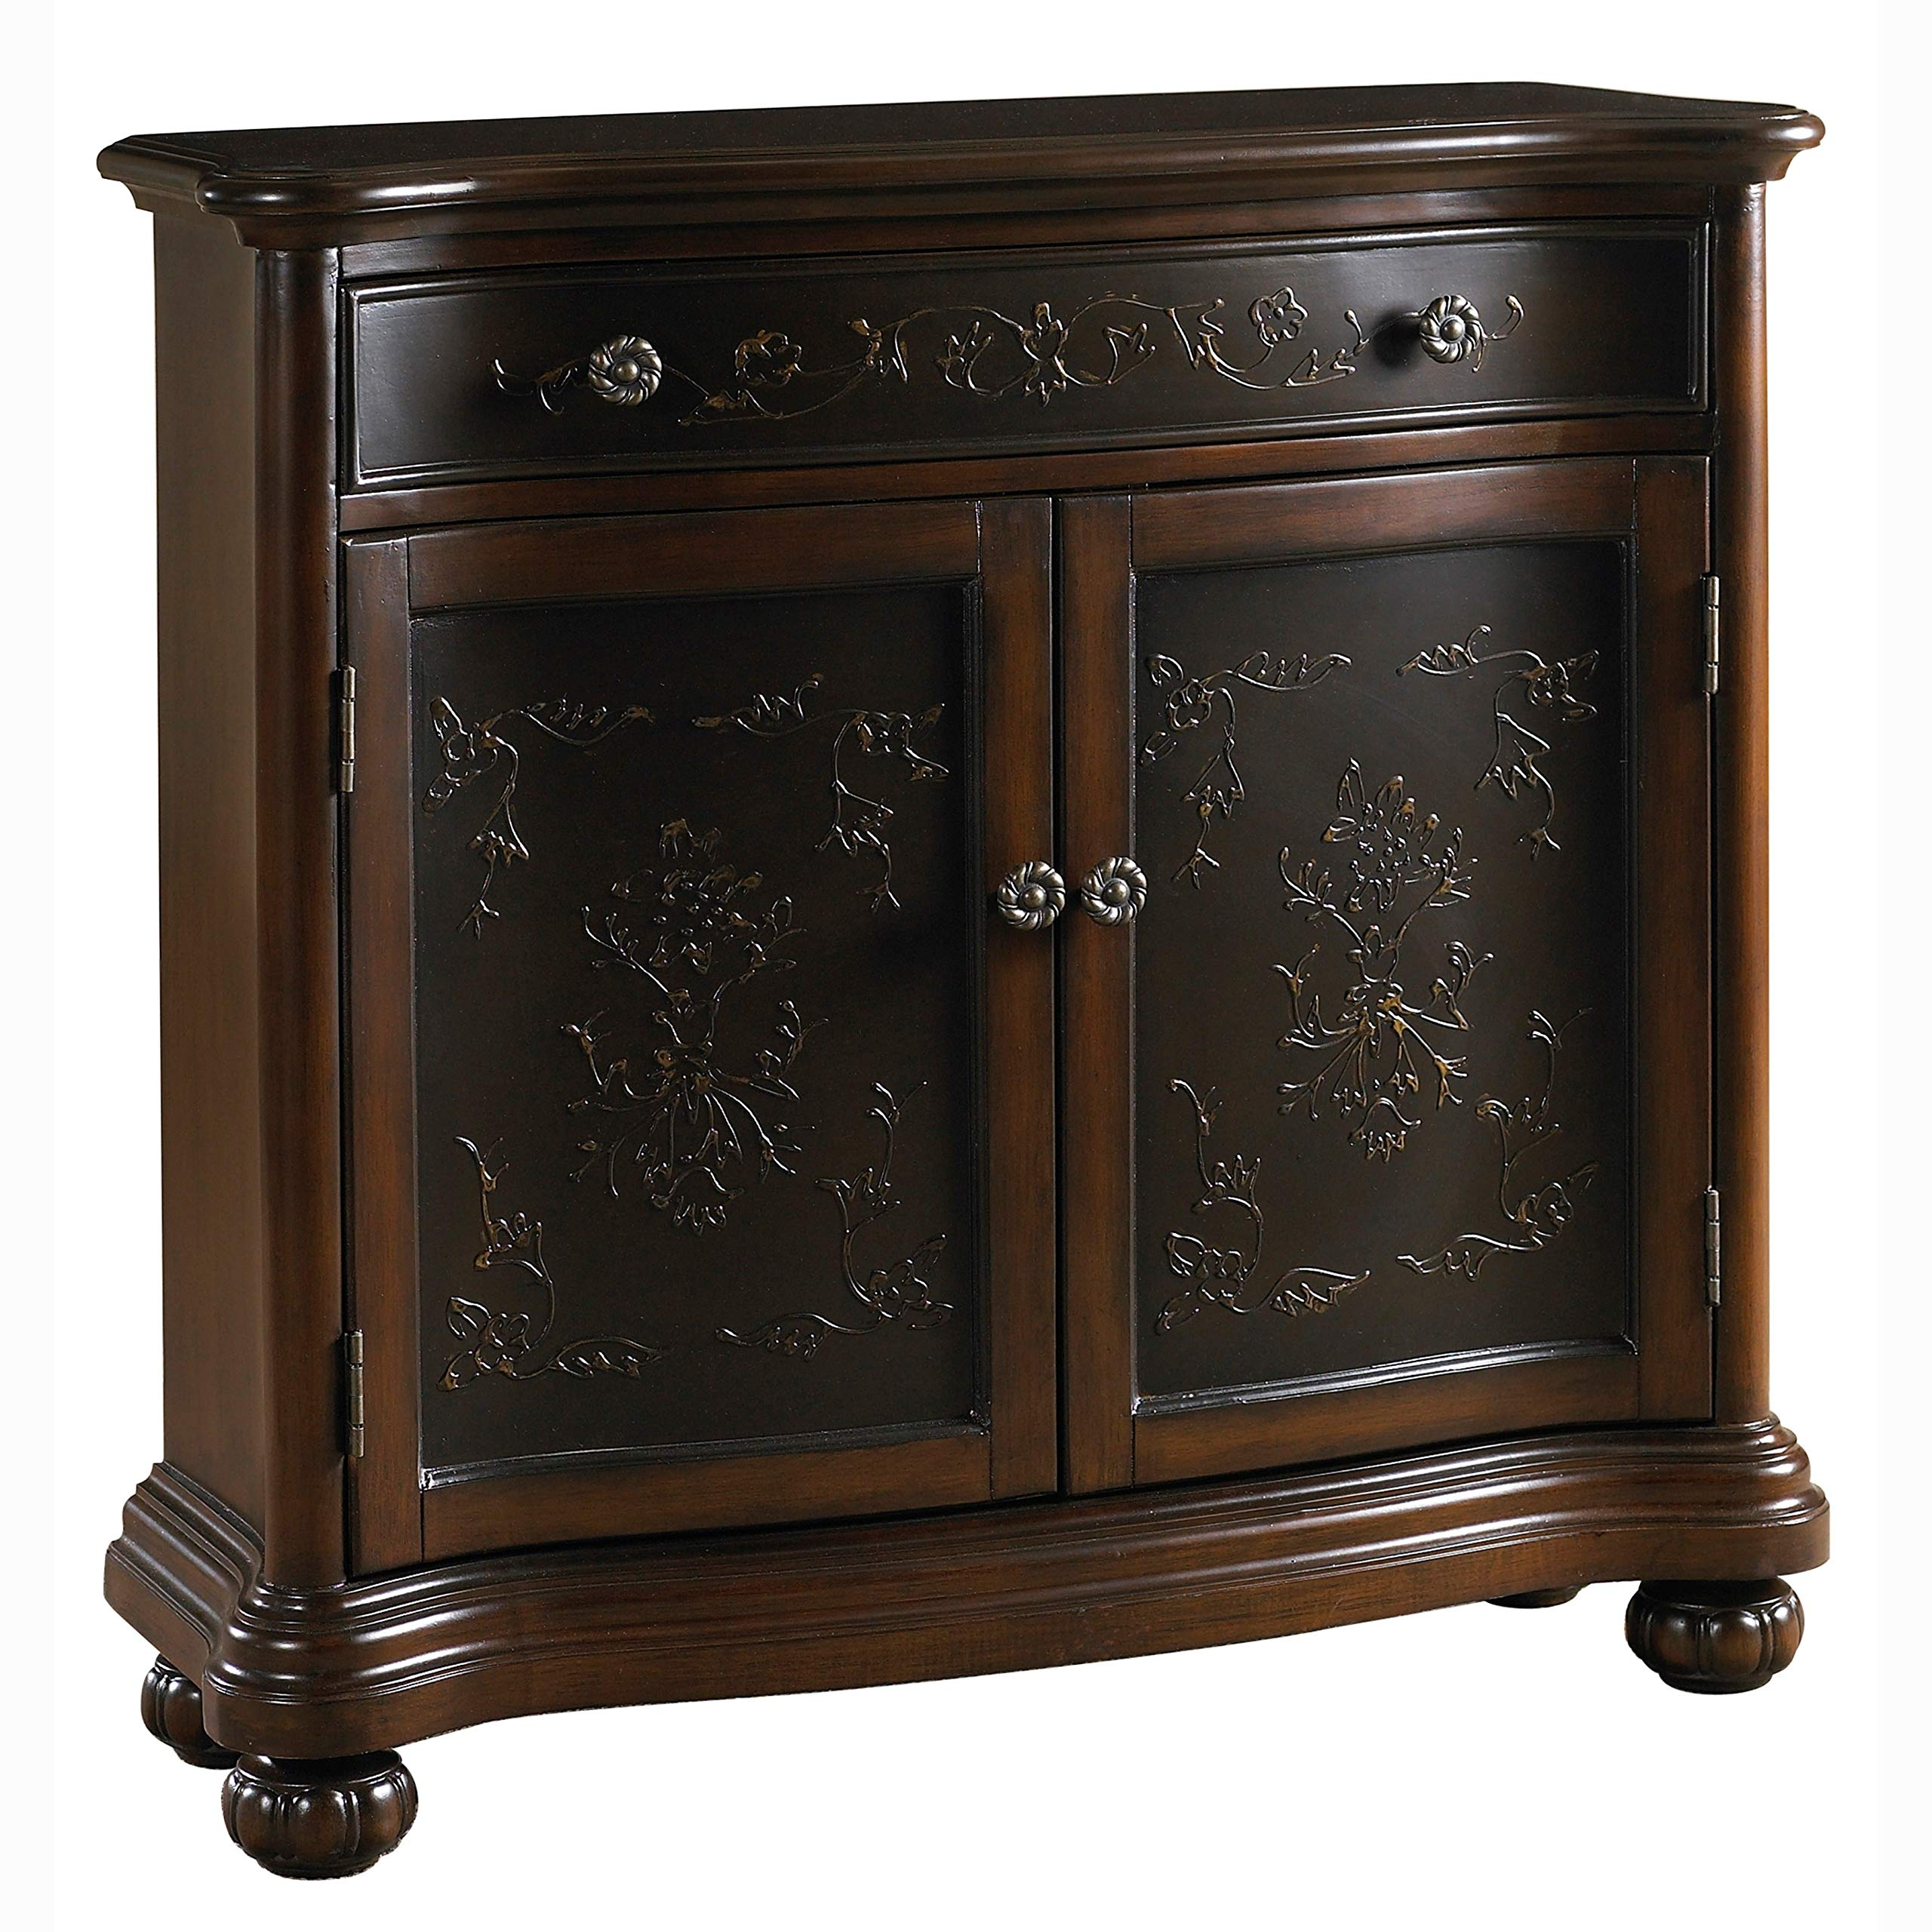 Hand-Painted Accent Chest with Faux Metal Front Brown Traditional Transitional Rectangle Round Brass MDF Painted Storage by Unknown